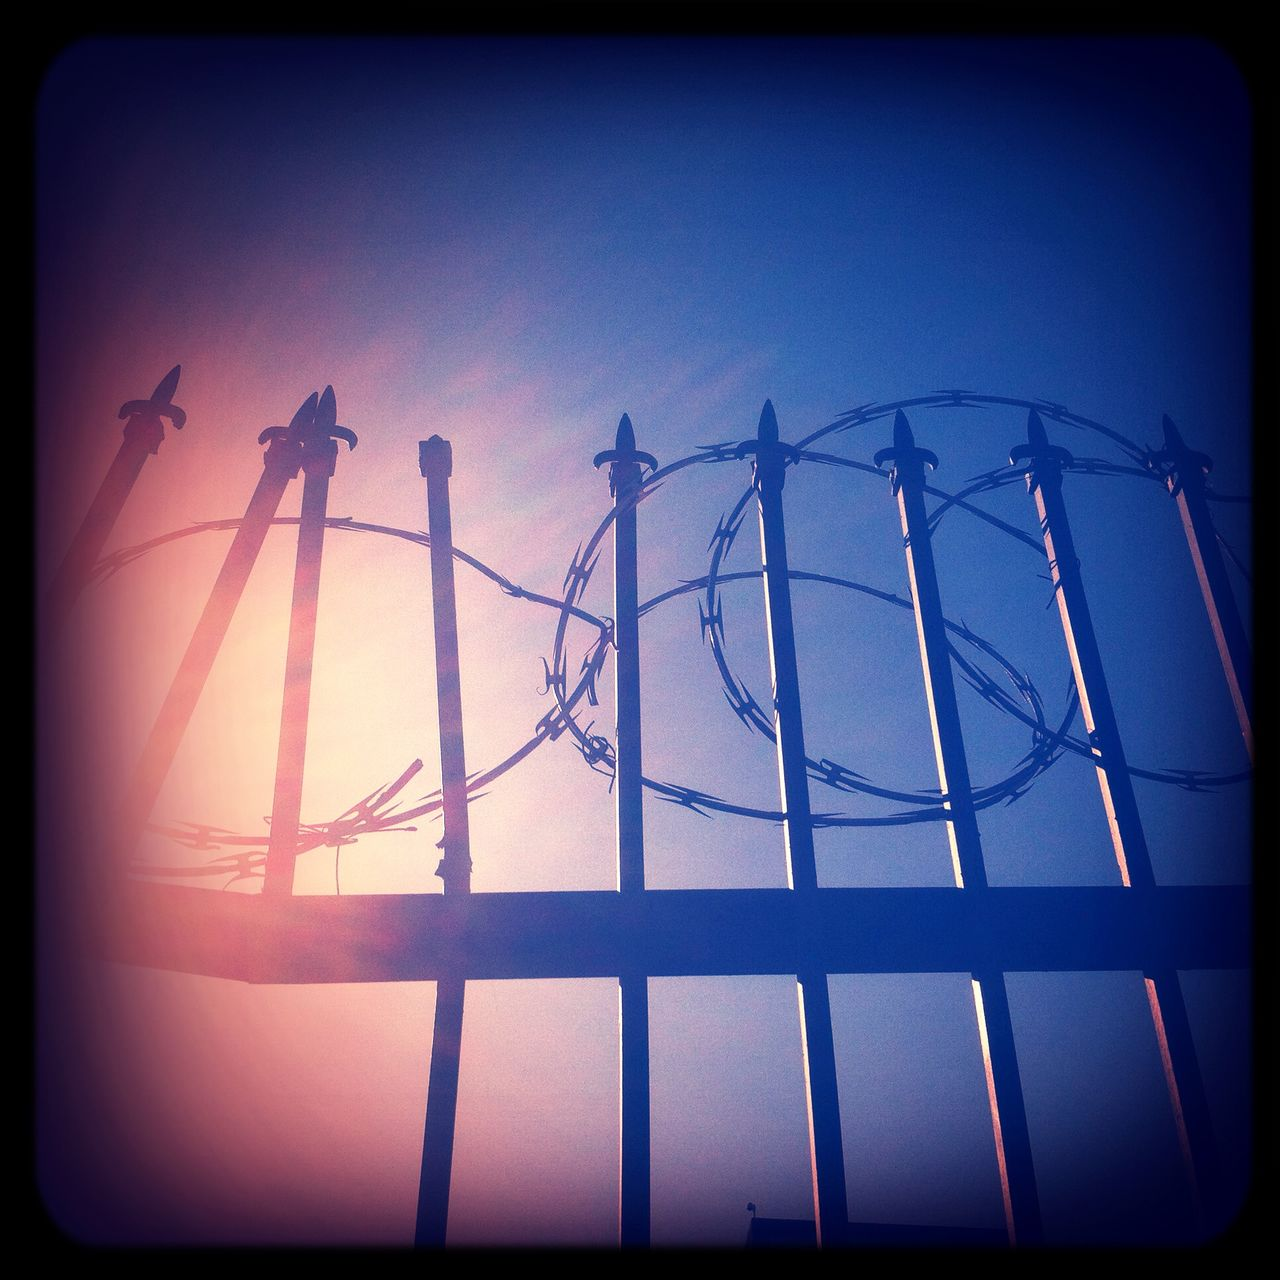 Low angle view of fence with razor wire